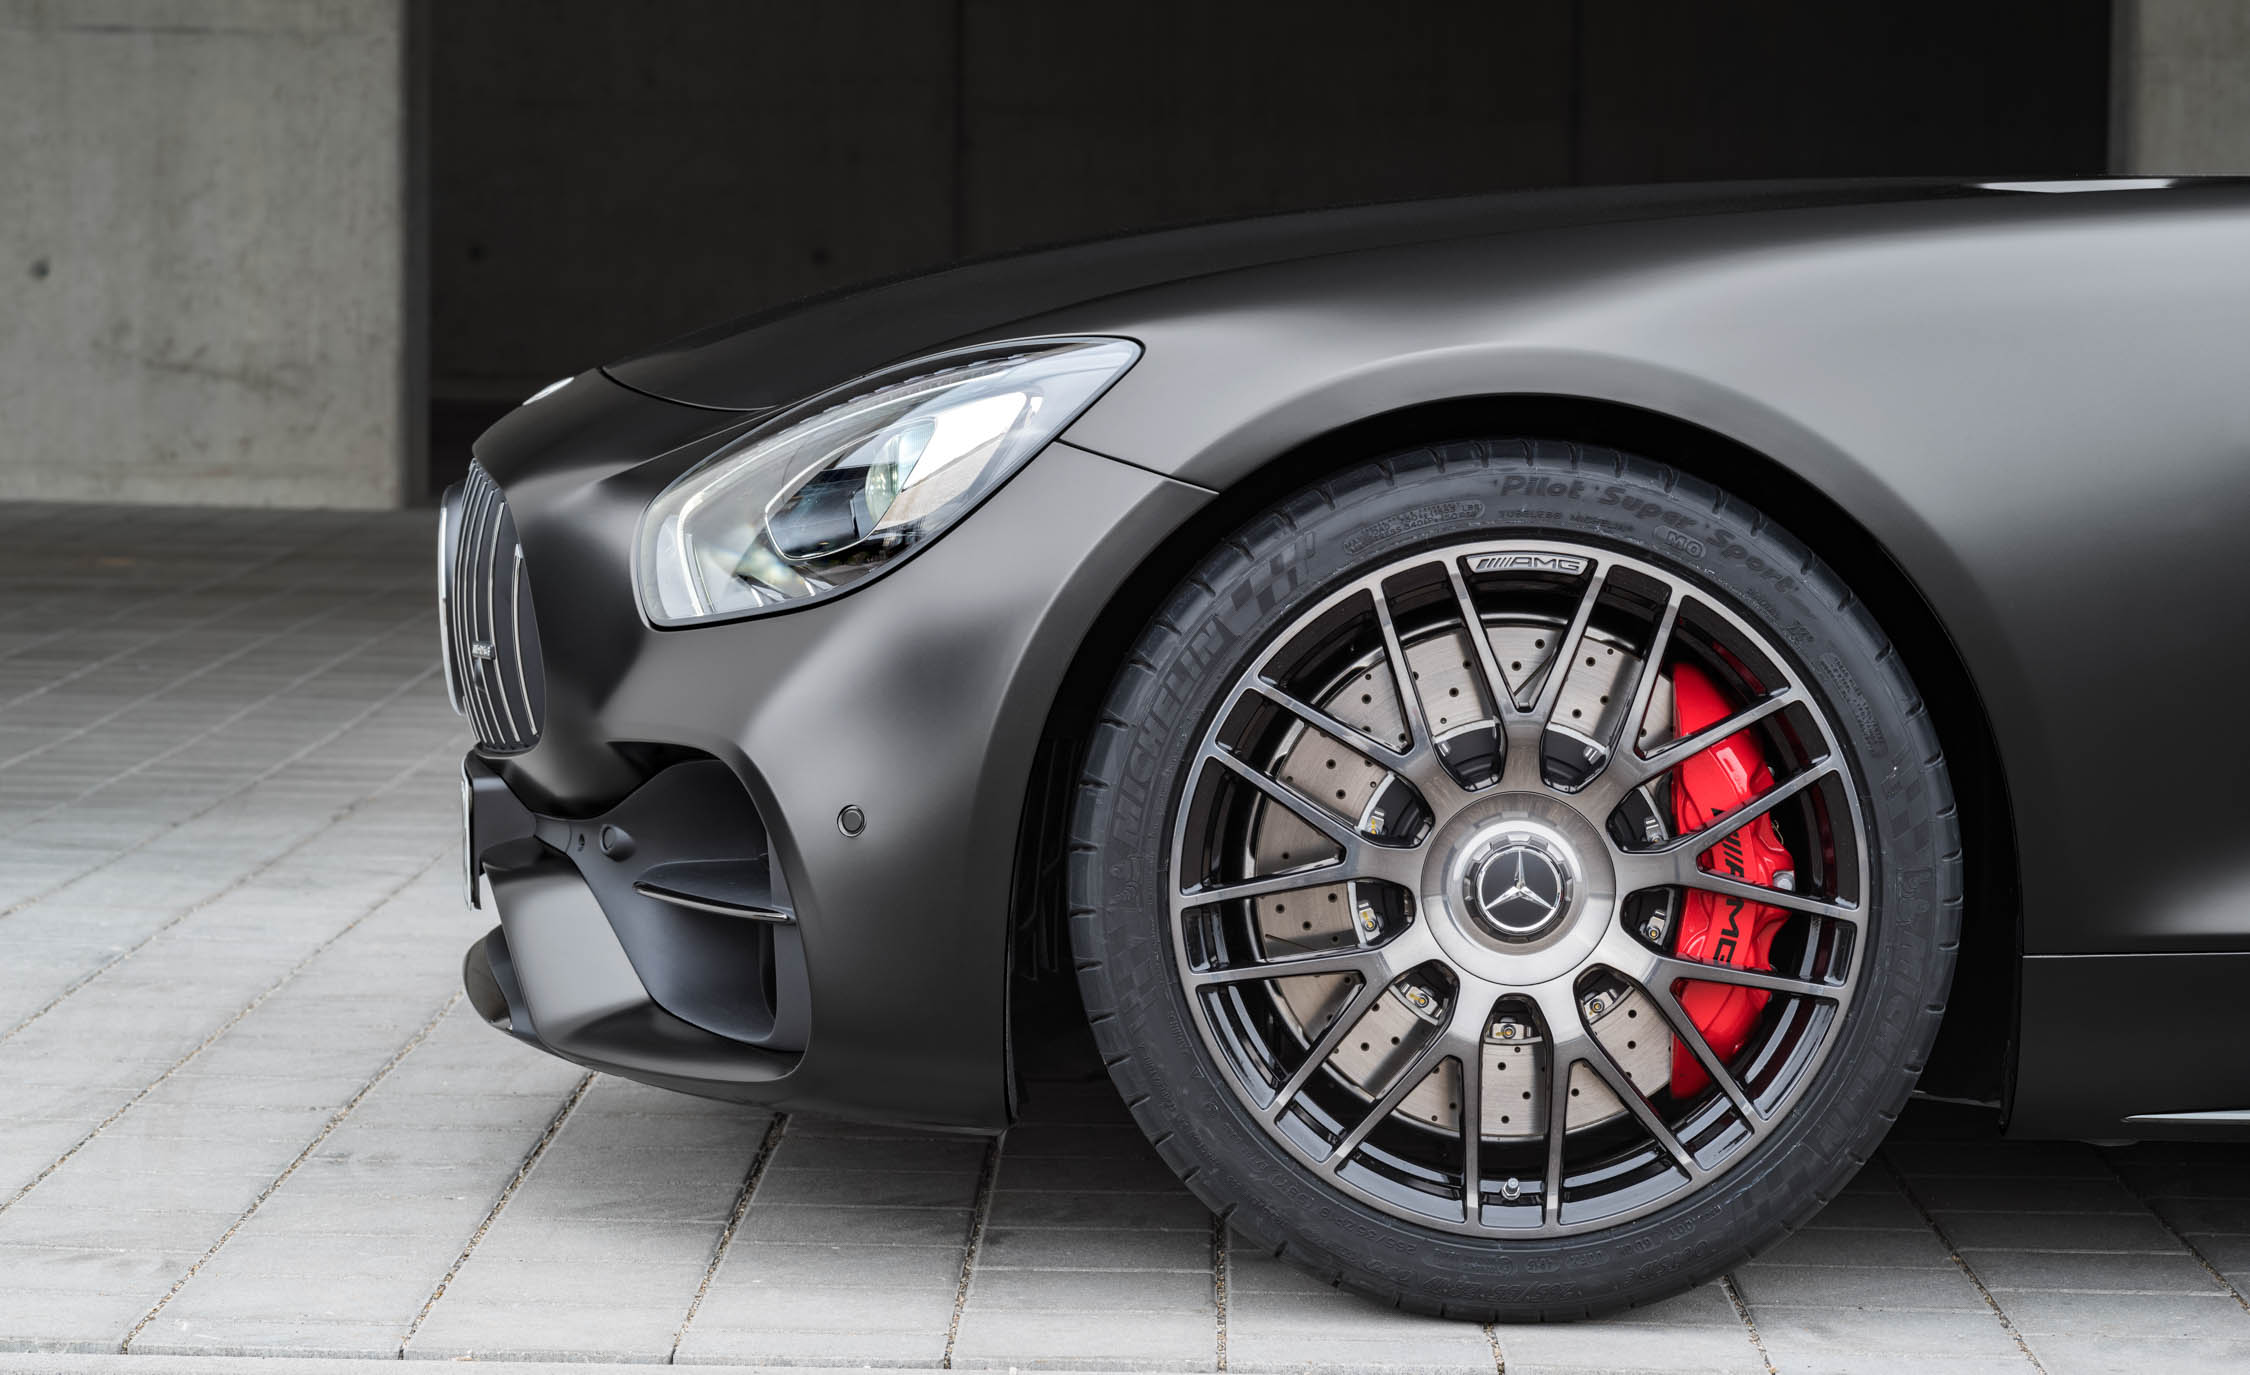 2018 Mercedes Amg Gt C Exterior View Wheel Trim (View 20 of 23)